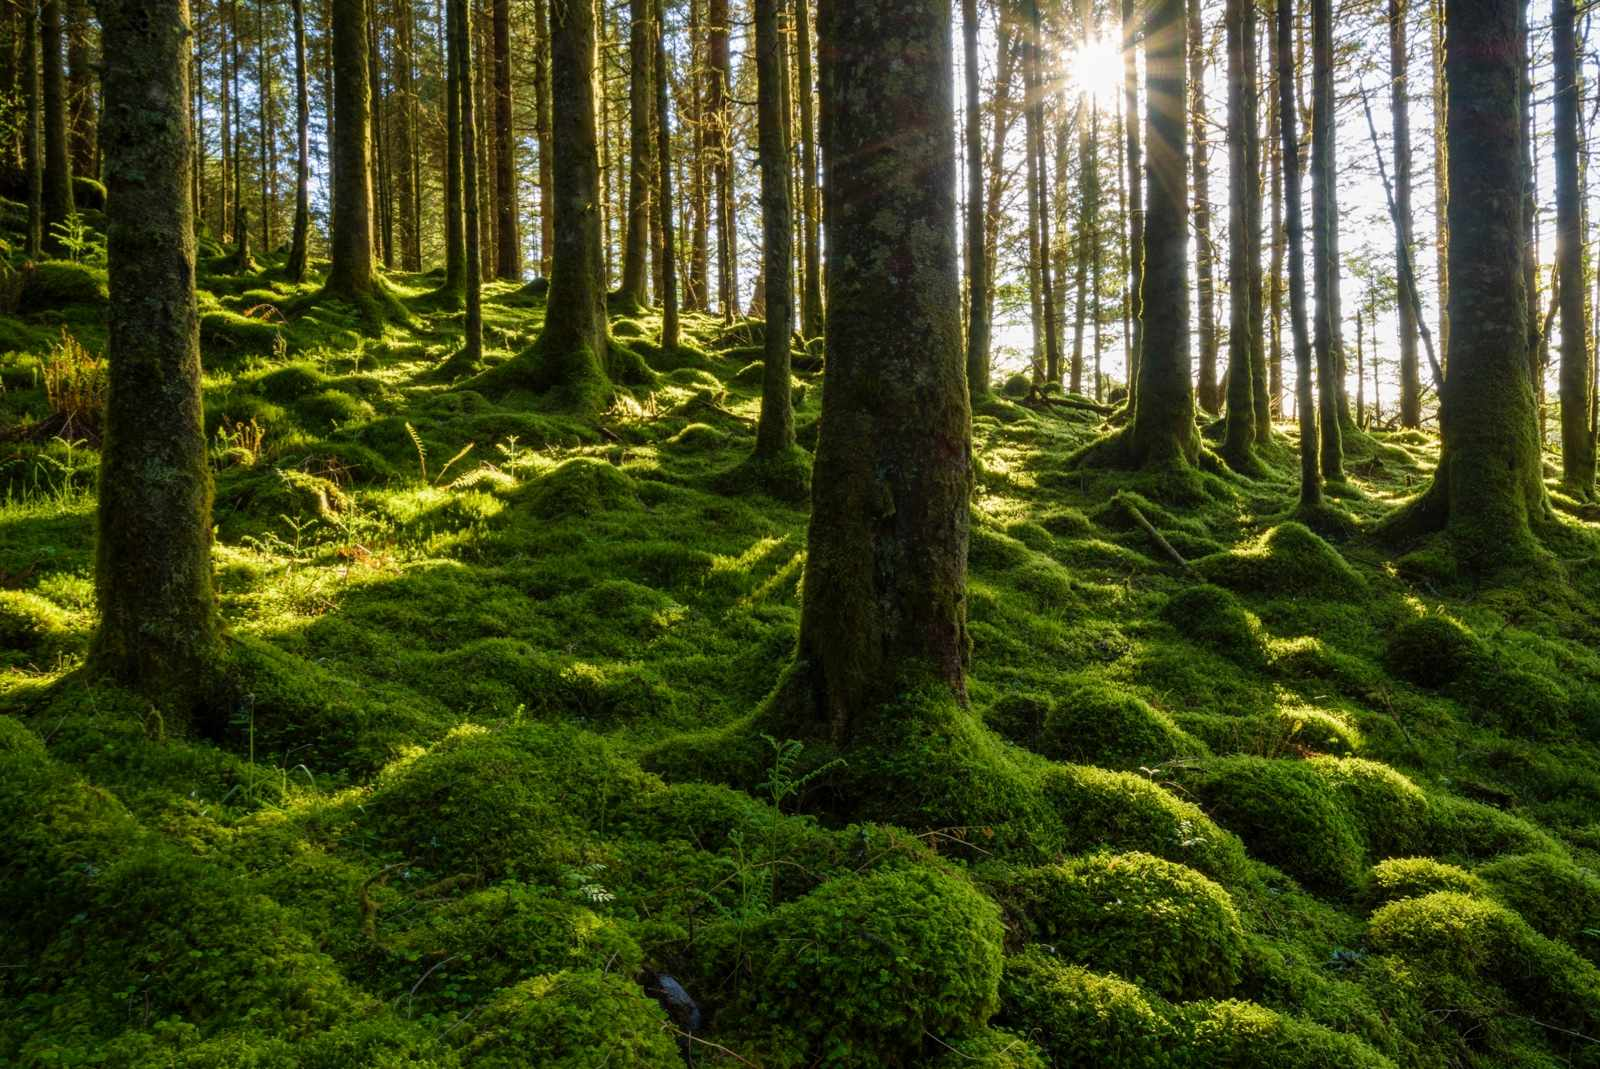 600-09013880 © Raimund Linke Model Release: No Property Release: No Moss covered ground and tree trunks in a conifer forest with the sun shining through the trees at Loch Awe in Argyll and Bute in Scotland